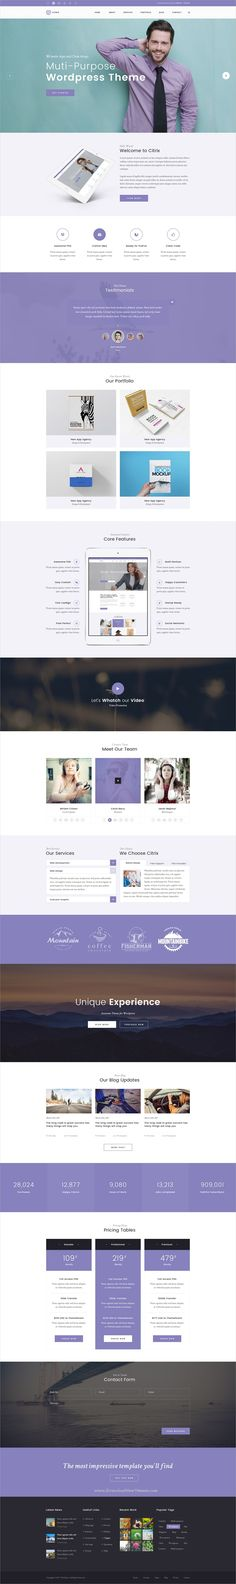 Citrix is clean and modern design multipurpose #PSD template for #corporate, photographs, personal, portfolio, Blog and services website with 12 layered PSD files download now➩ https://themeforest.net/item/citrix-multipurpose-website-psd-template/19766051?ref=Datasata